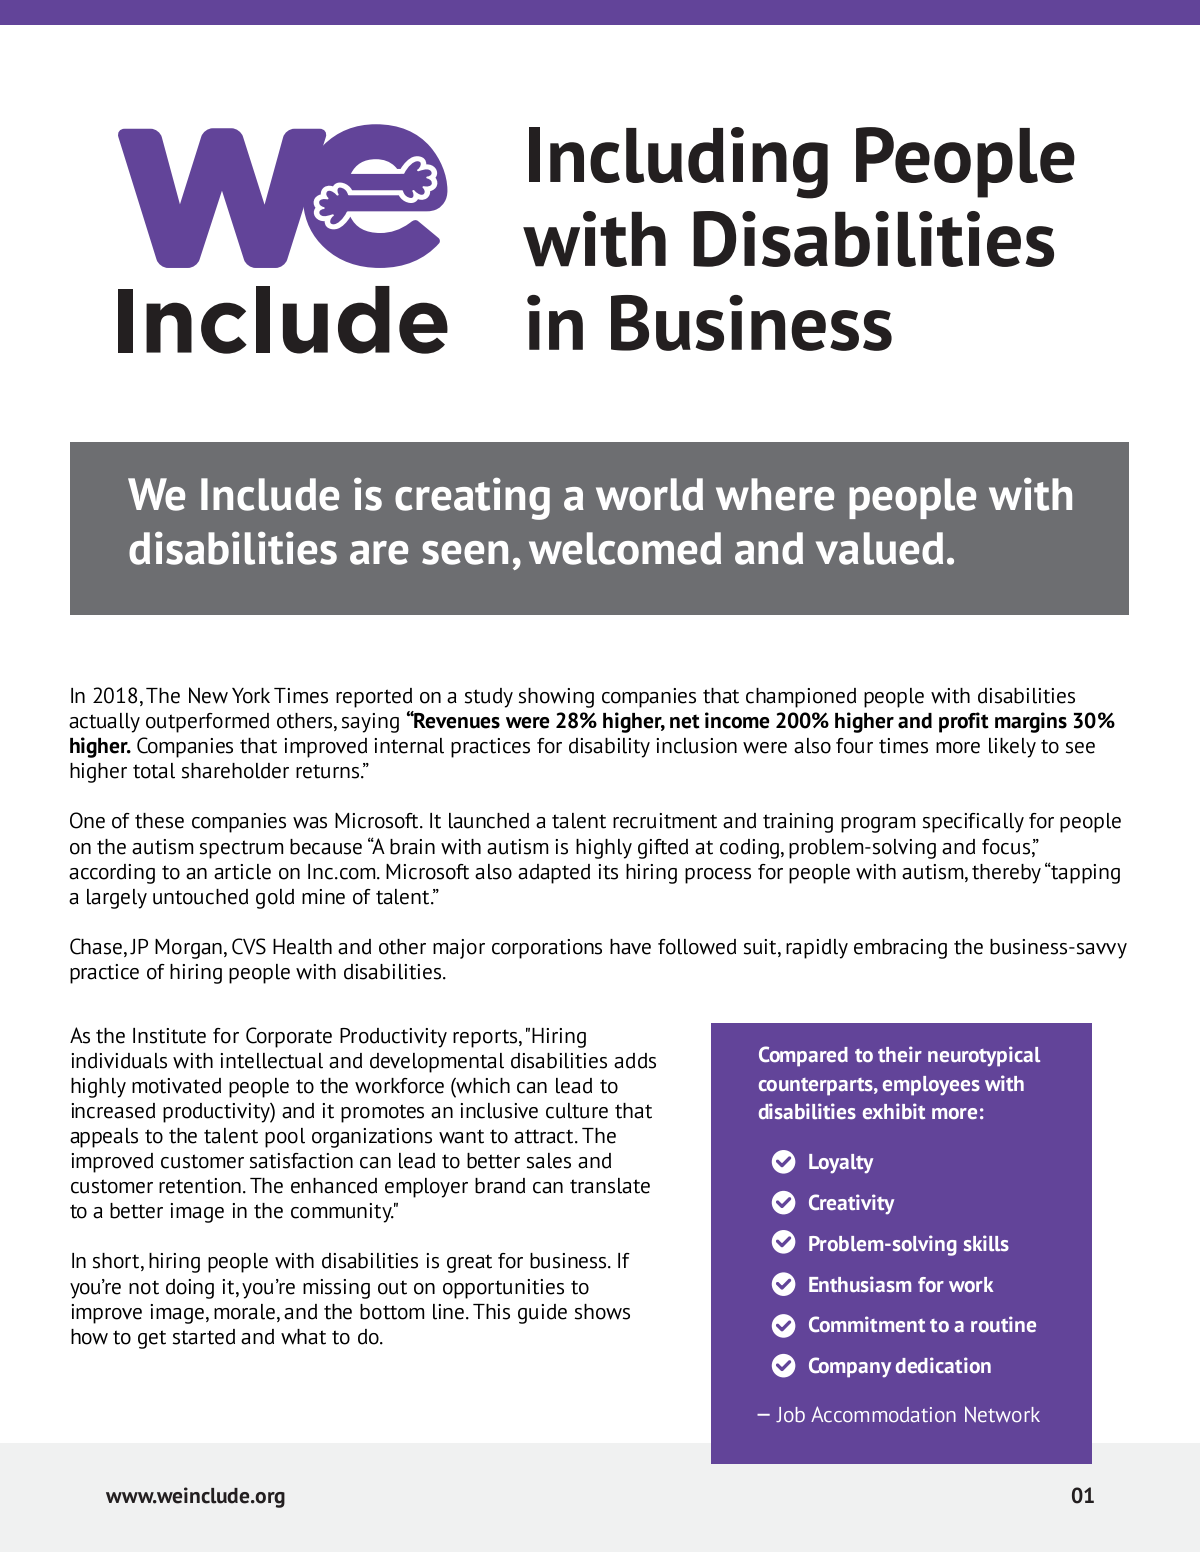 We Include's Business Inclusion Guide